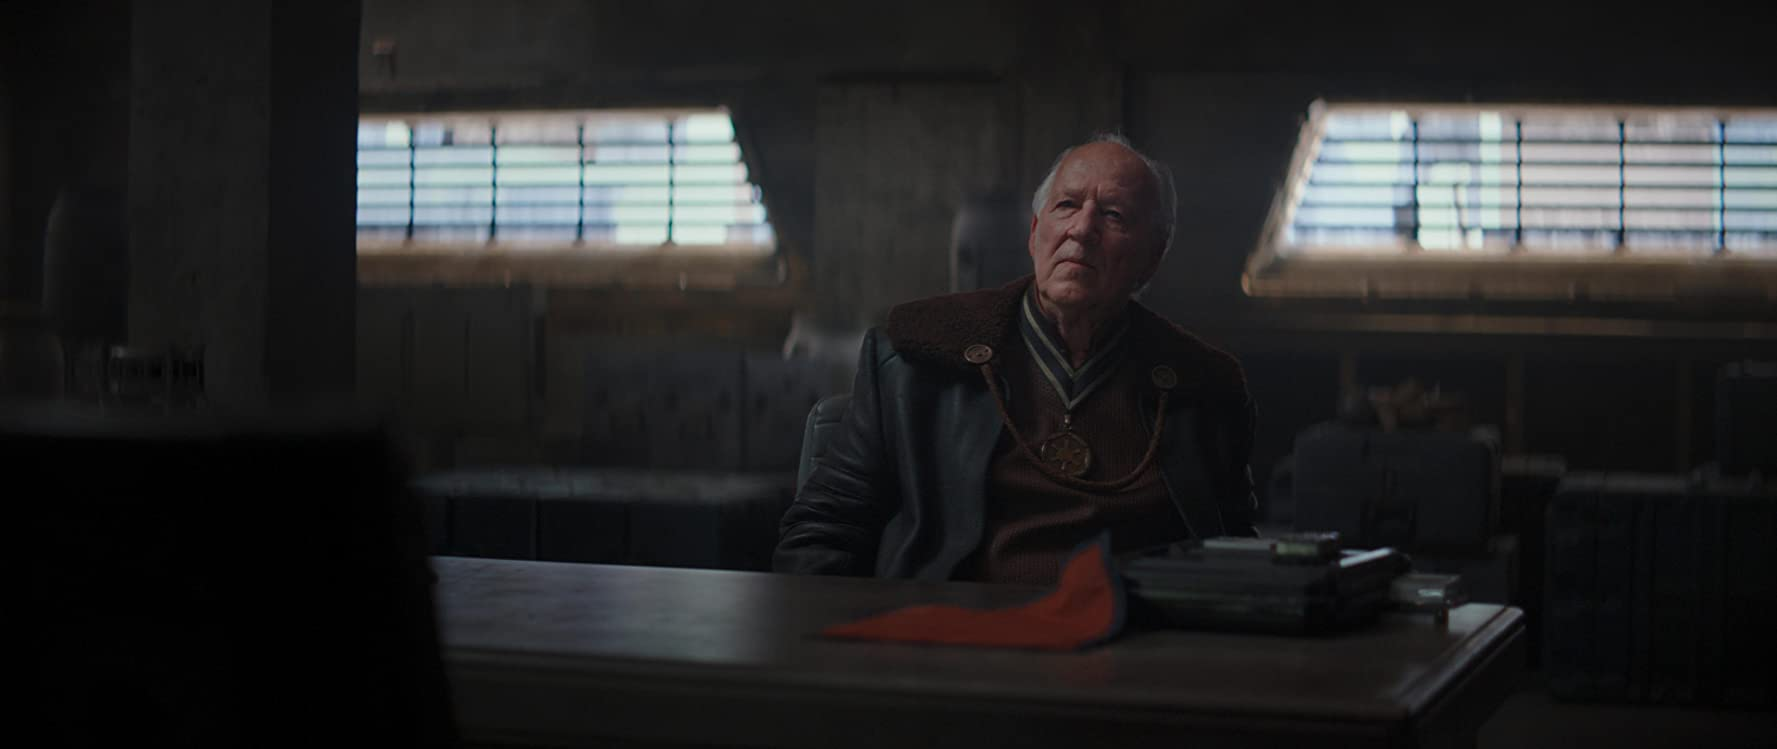 Werner Herzog in The Mandalorian (2019)